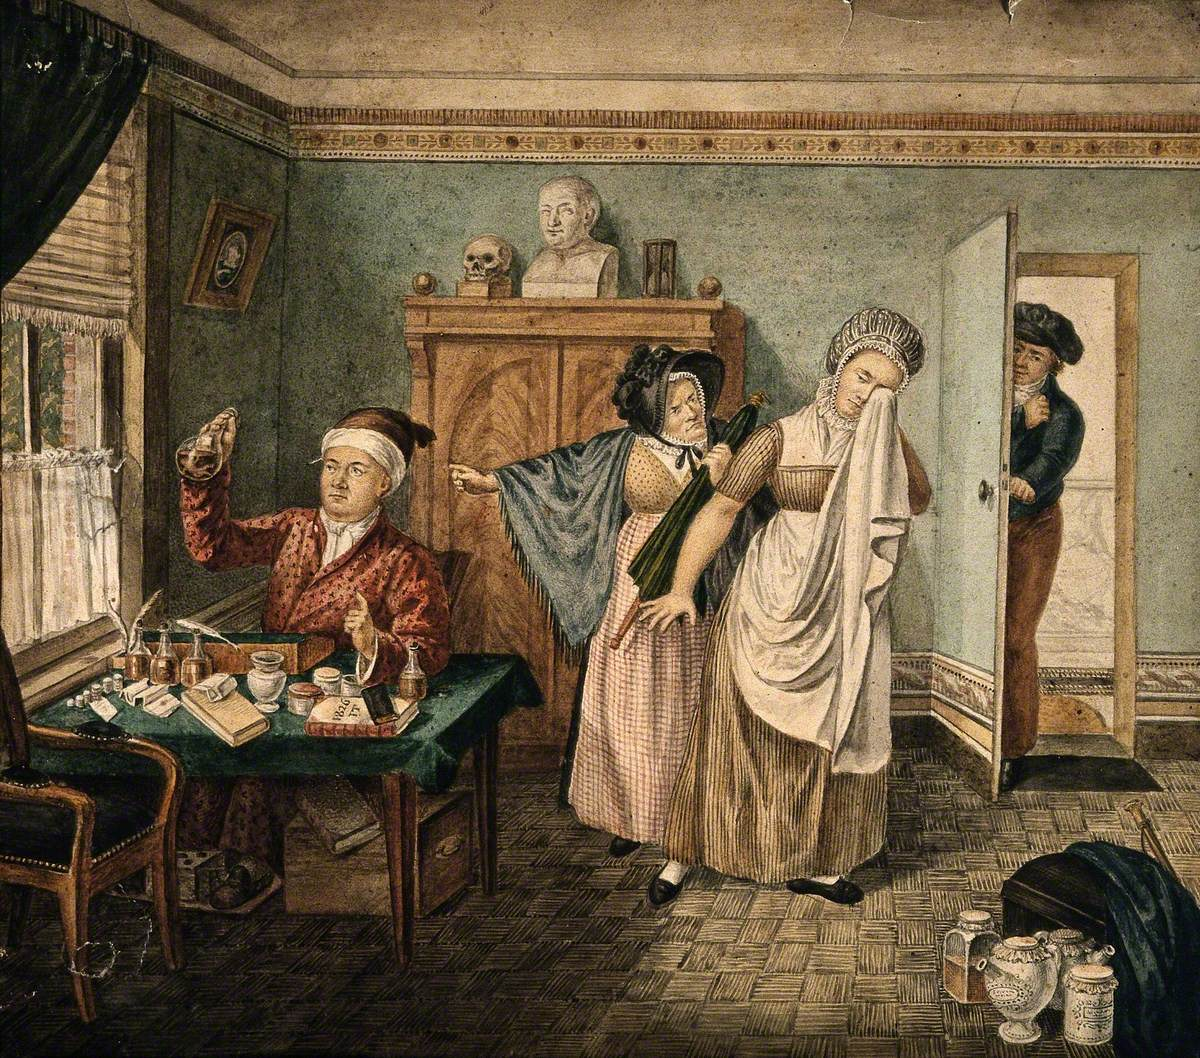 A Physician Examining a Urine Specimen in Which a Faint Figure of a Baby Is Visible, a Female Patient Is Crying and Being Shouted at by Her Angry Mother, Indicating that She Is Pregnant